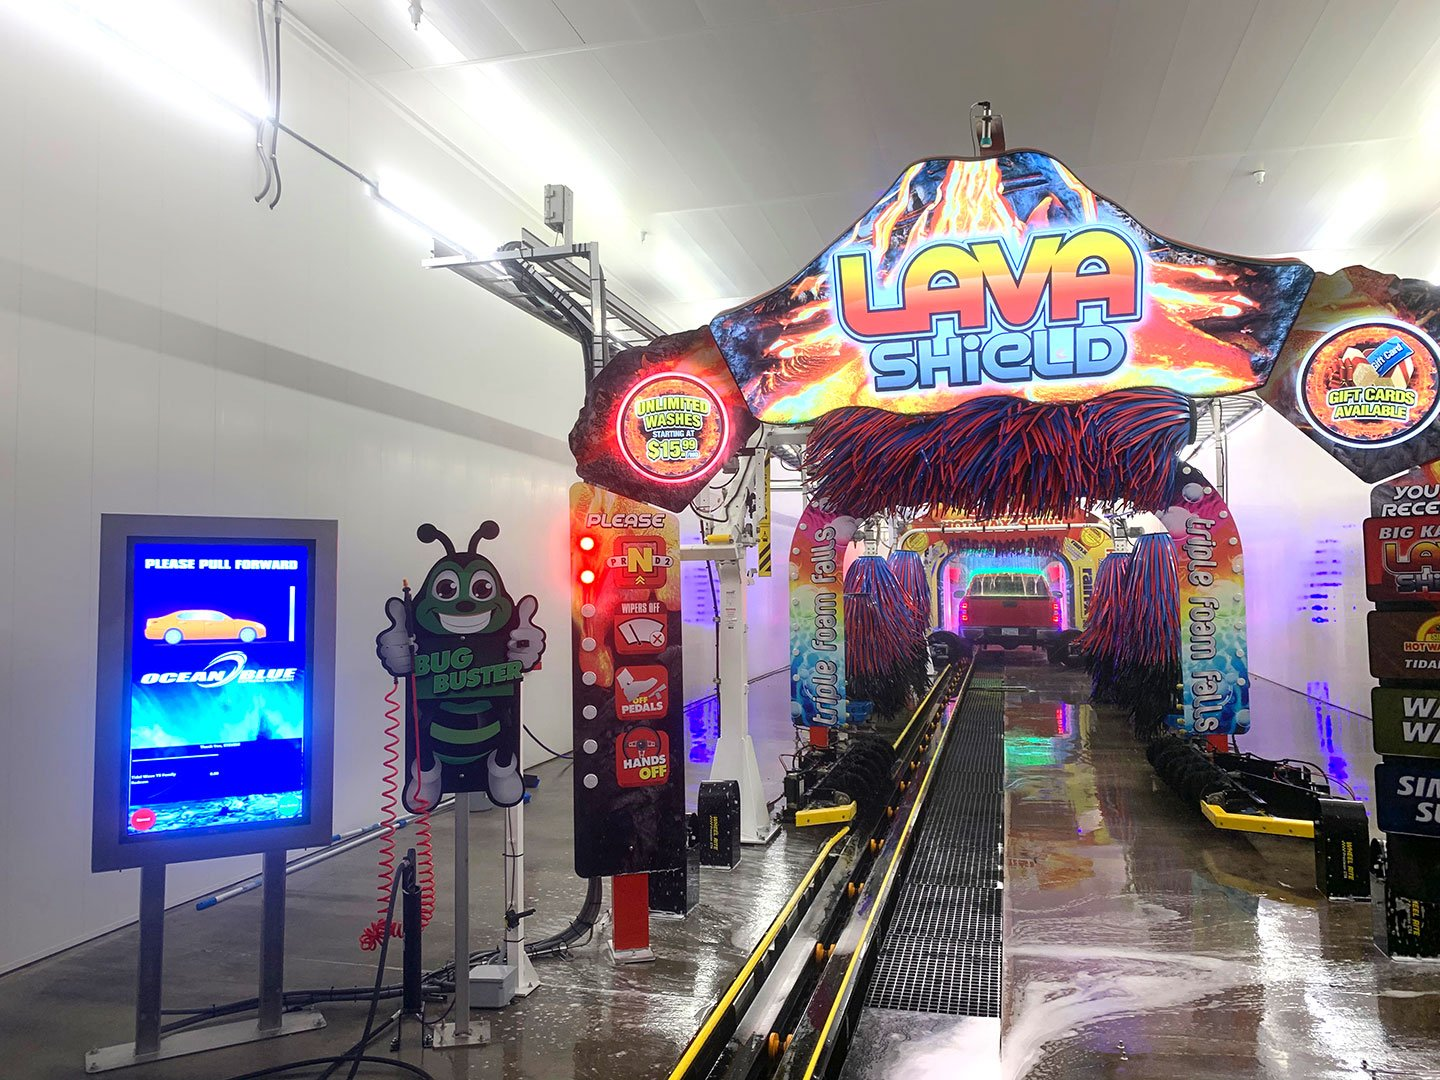 State of the art Car Wash